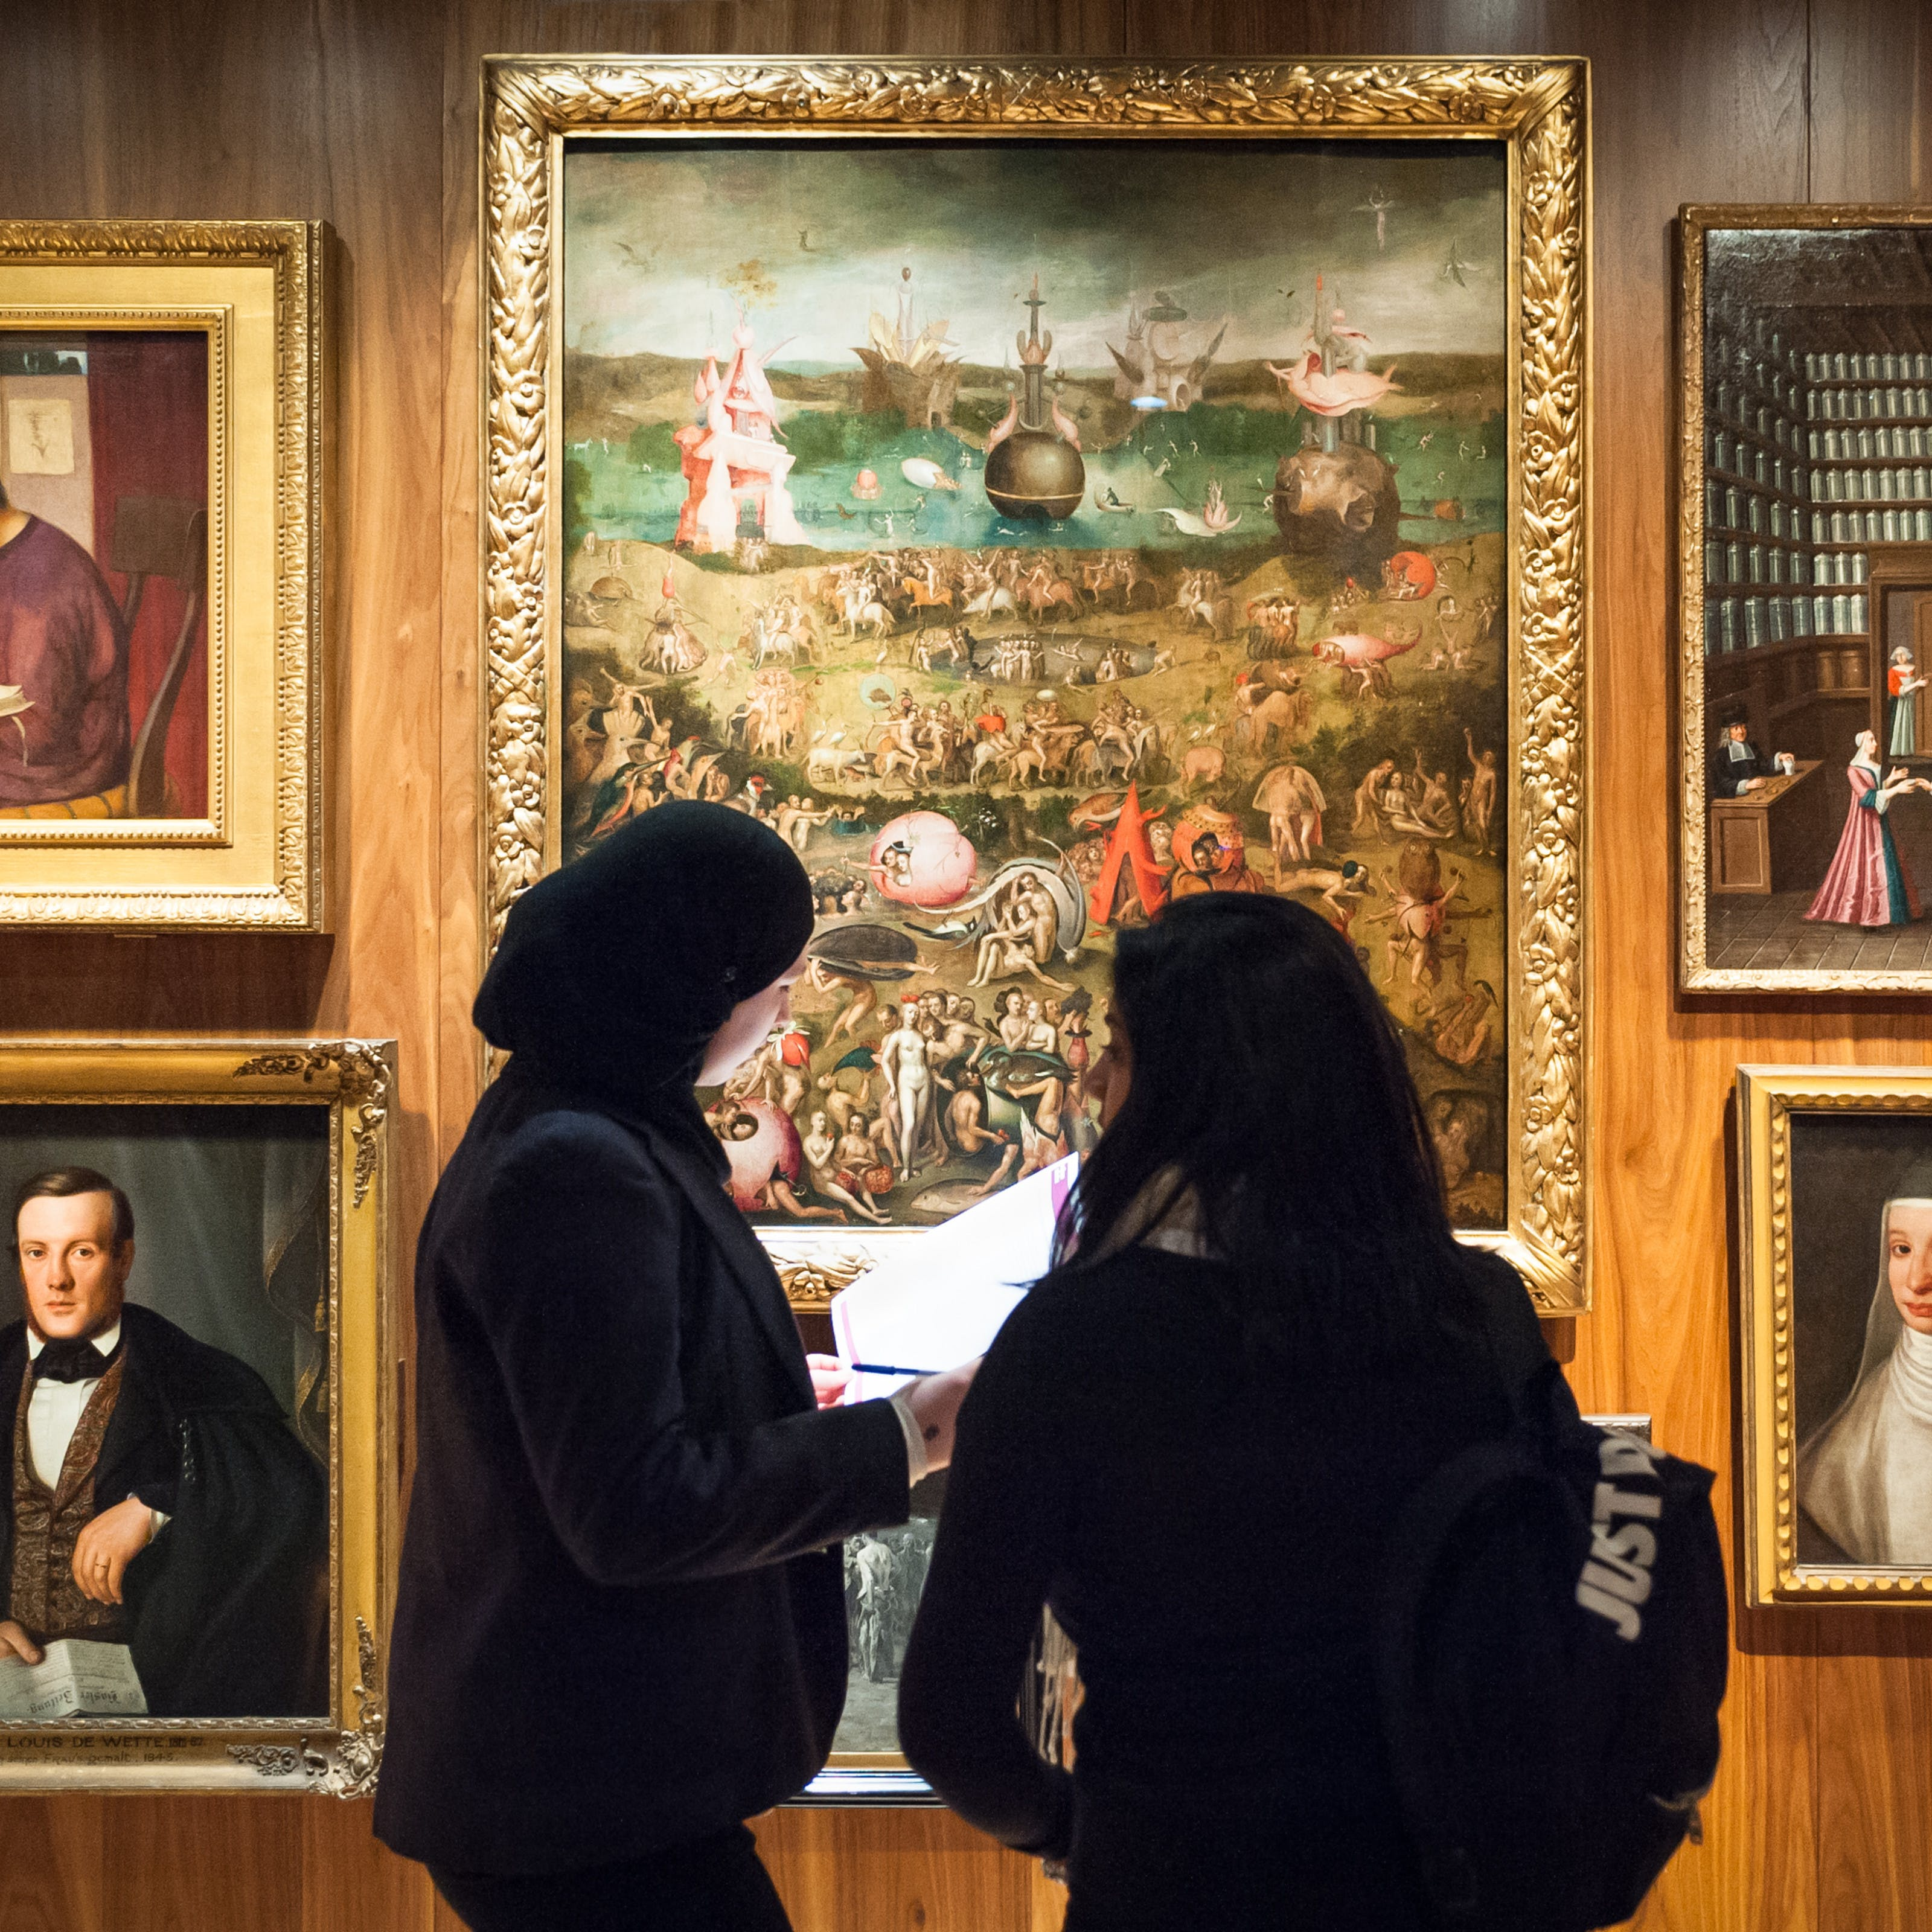 Photograph of the Medicine Man exhibition at Wellcome Collection showing a wall of oil paintings with two visitors standing in front.